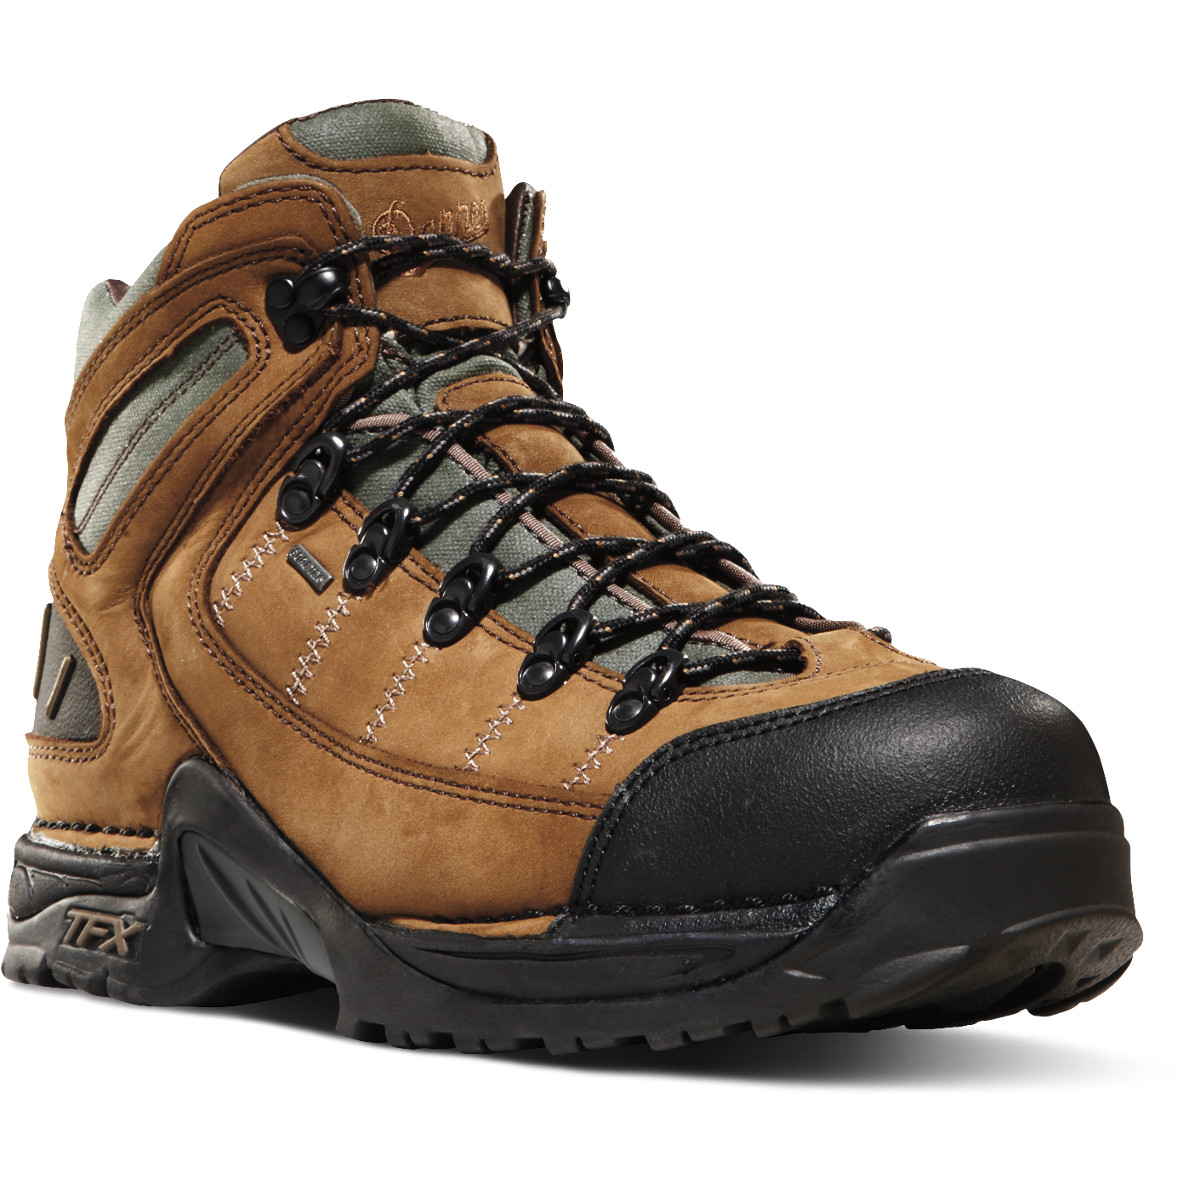 Danner Men's Radical 452 GTX Outdoor Boot | Buy it for life (BIFL)